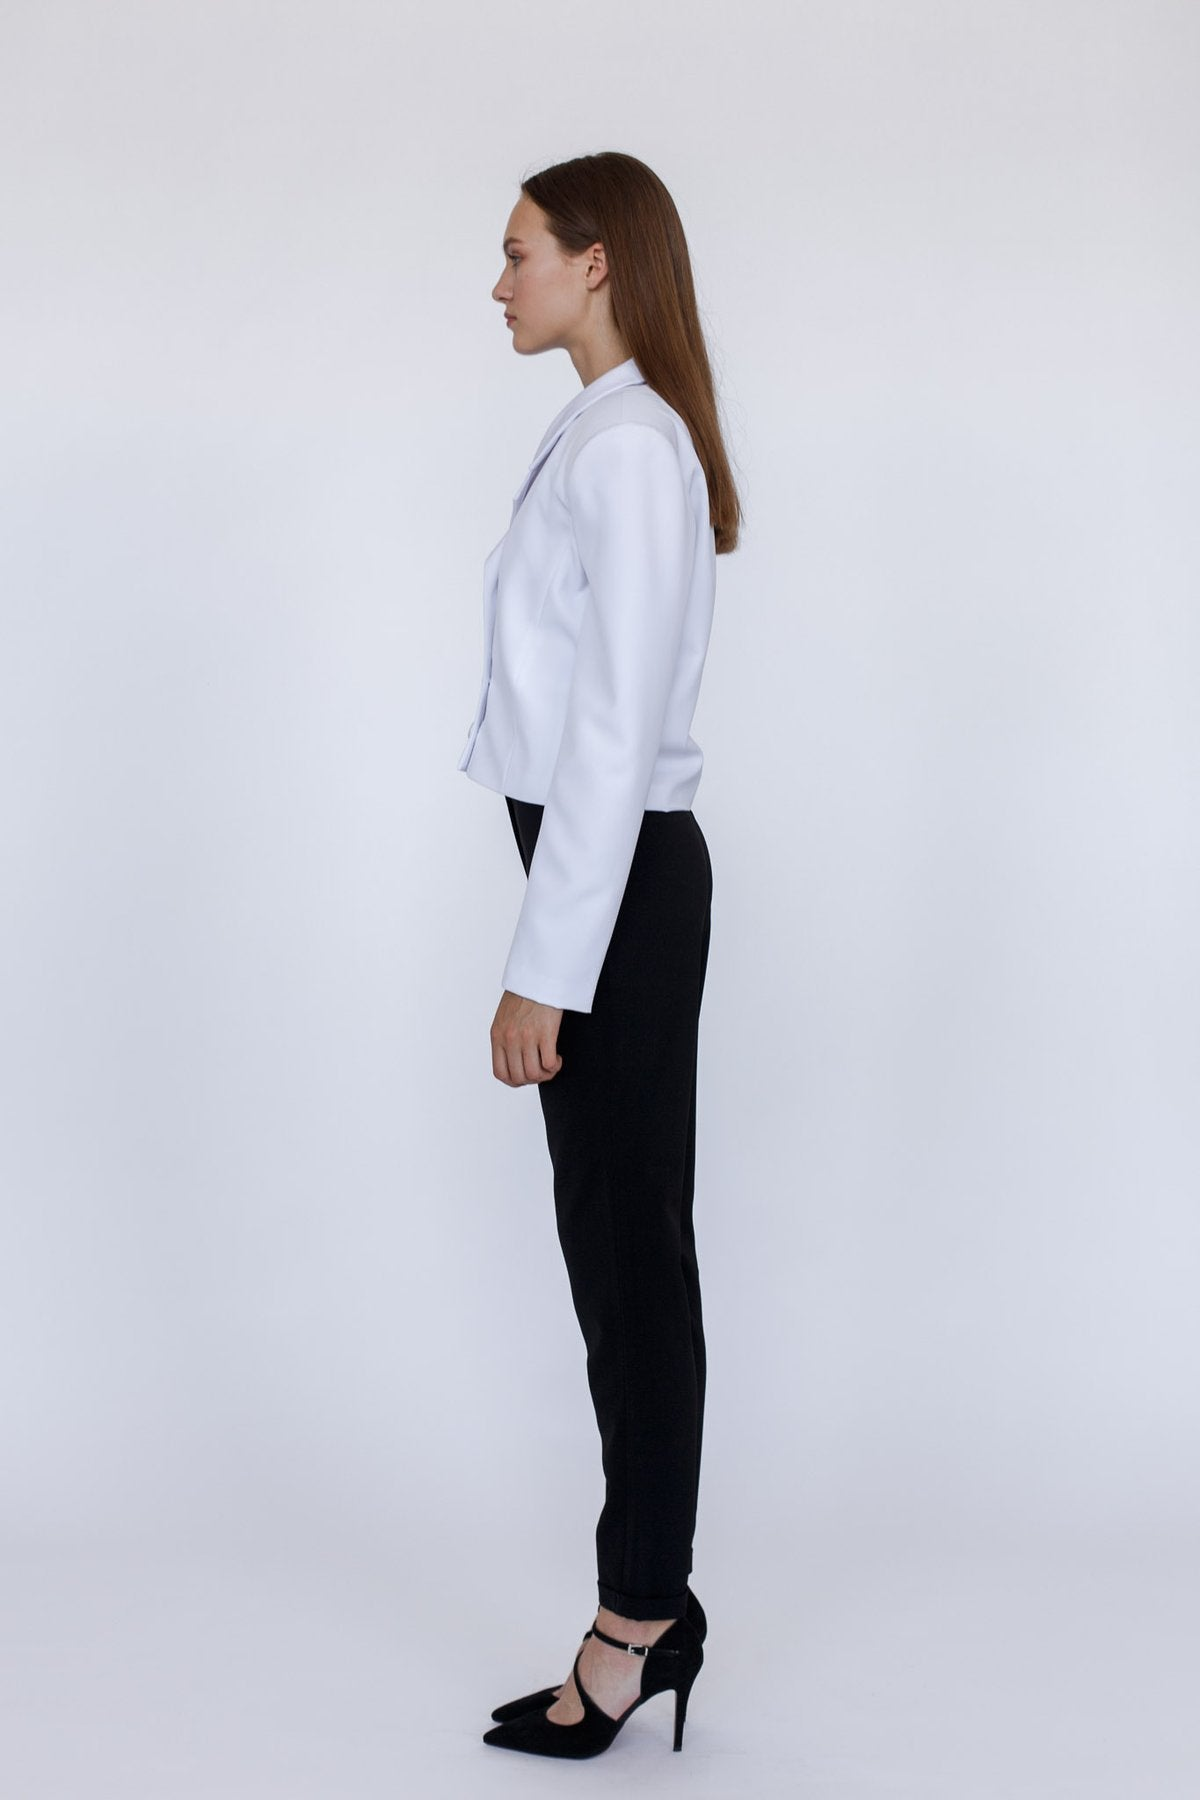 Le SLAP | Black cigarette pants pants